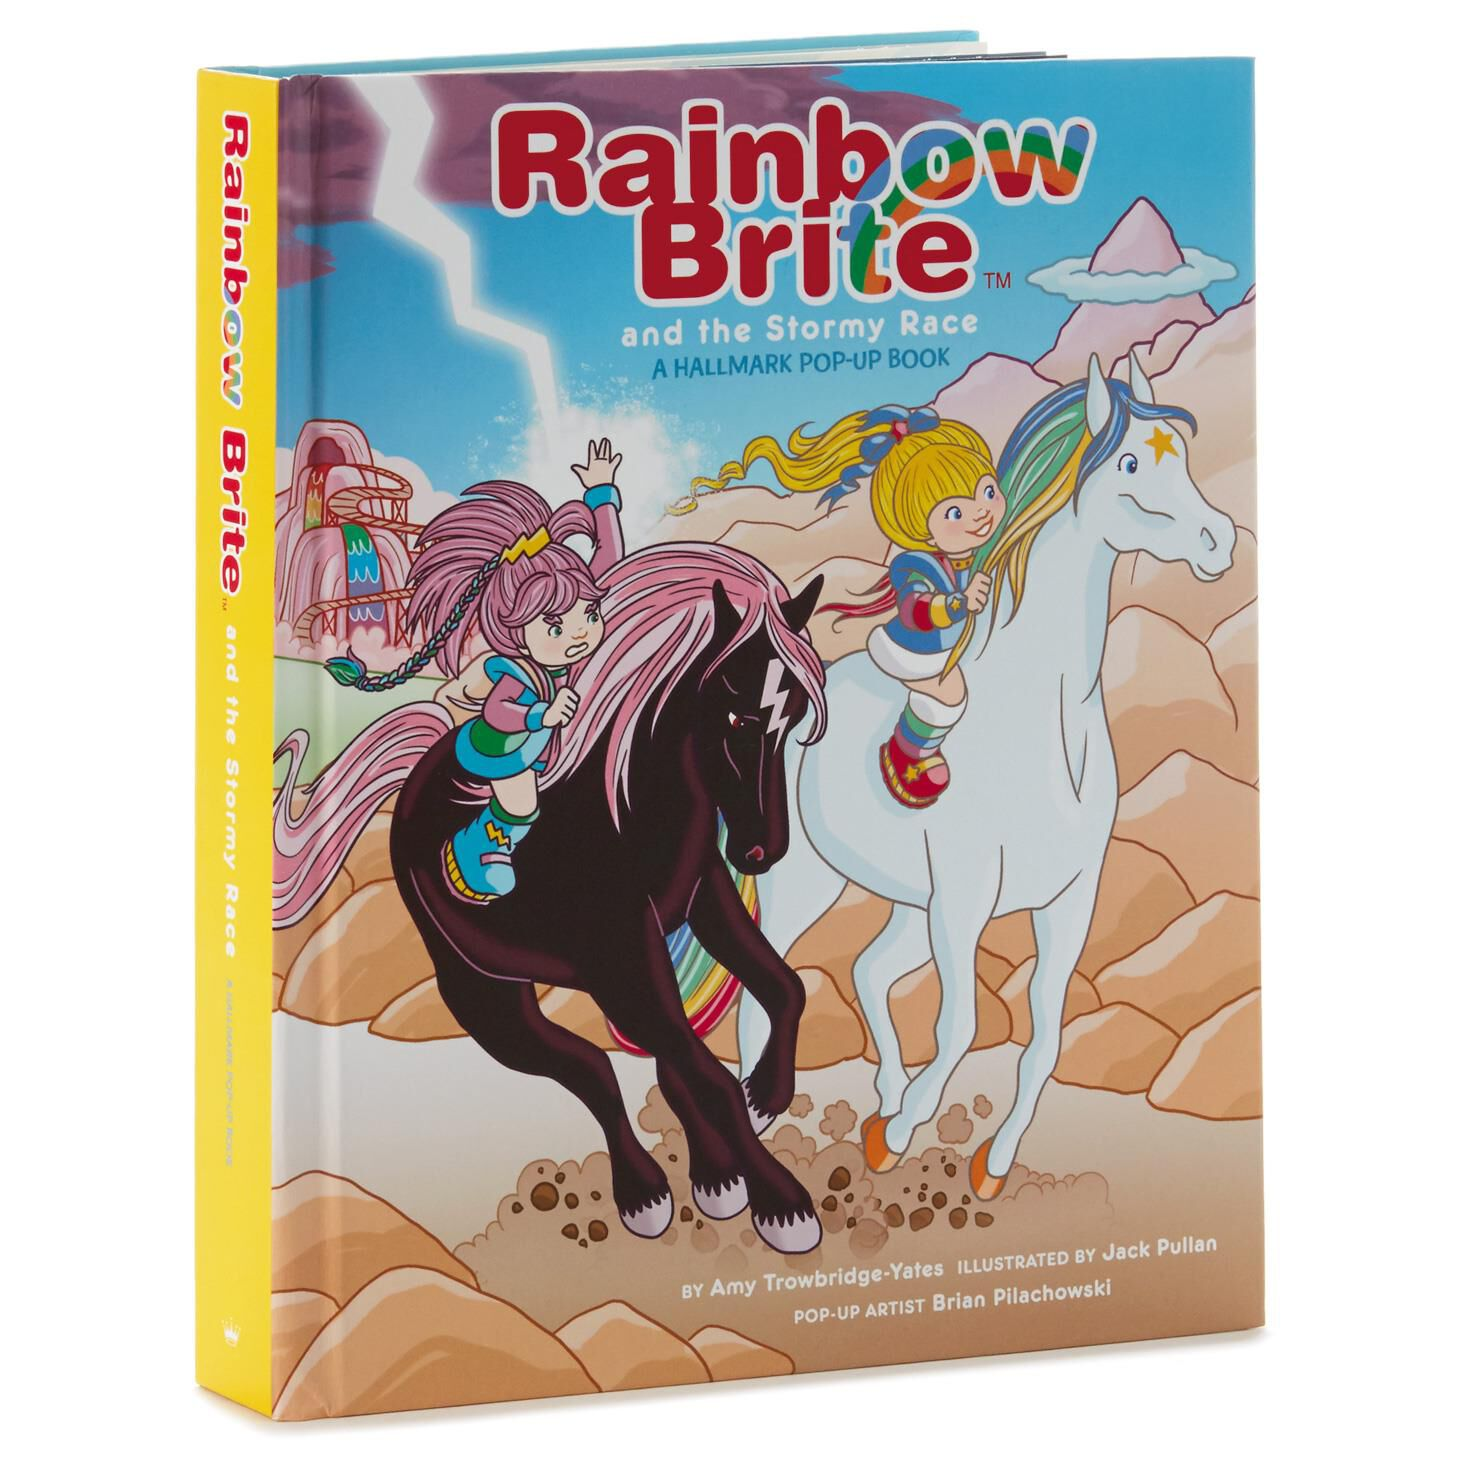 rainbow brite and the stormy race pop up book kids books hallmark